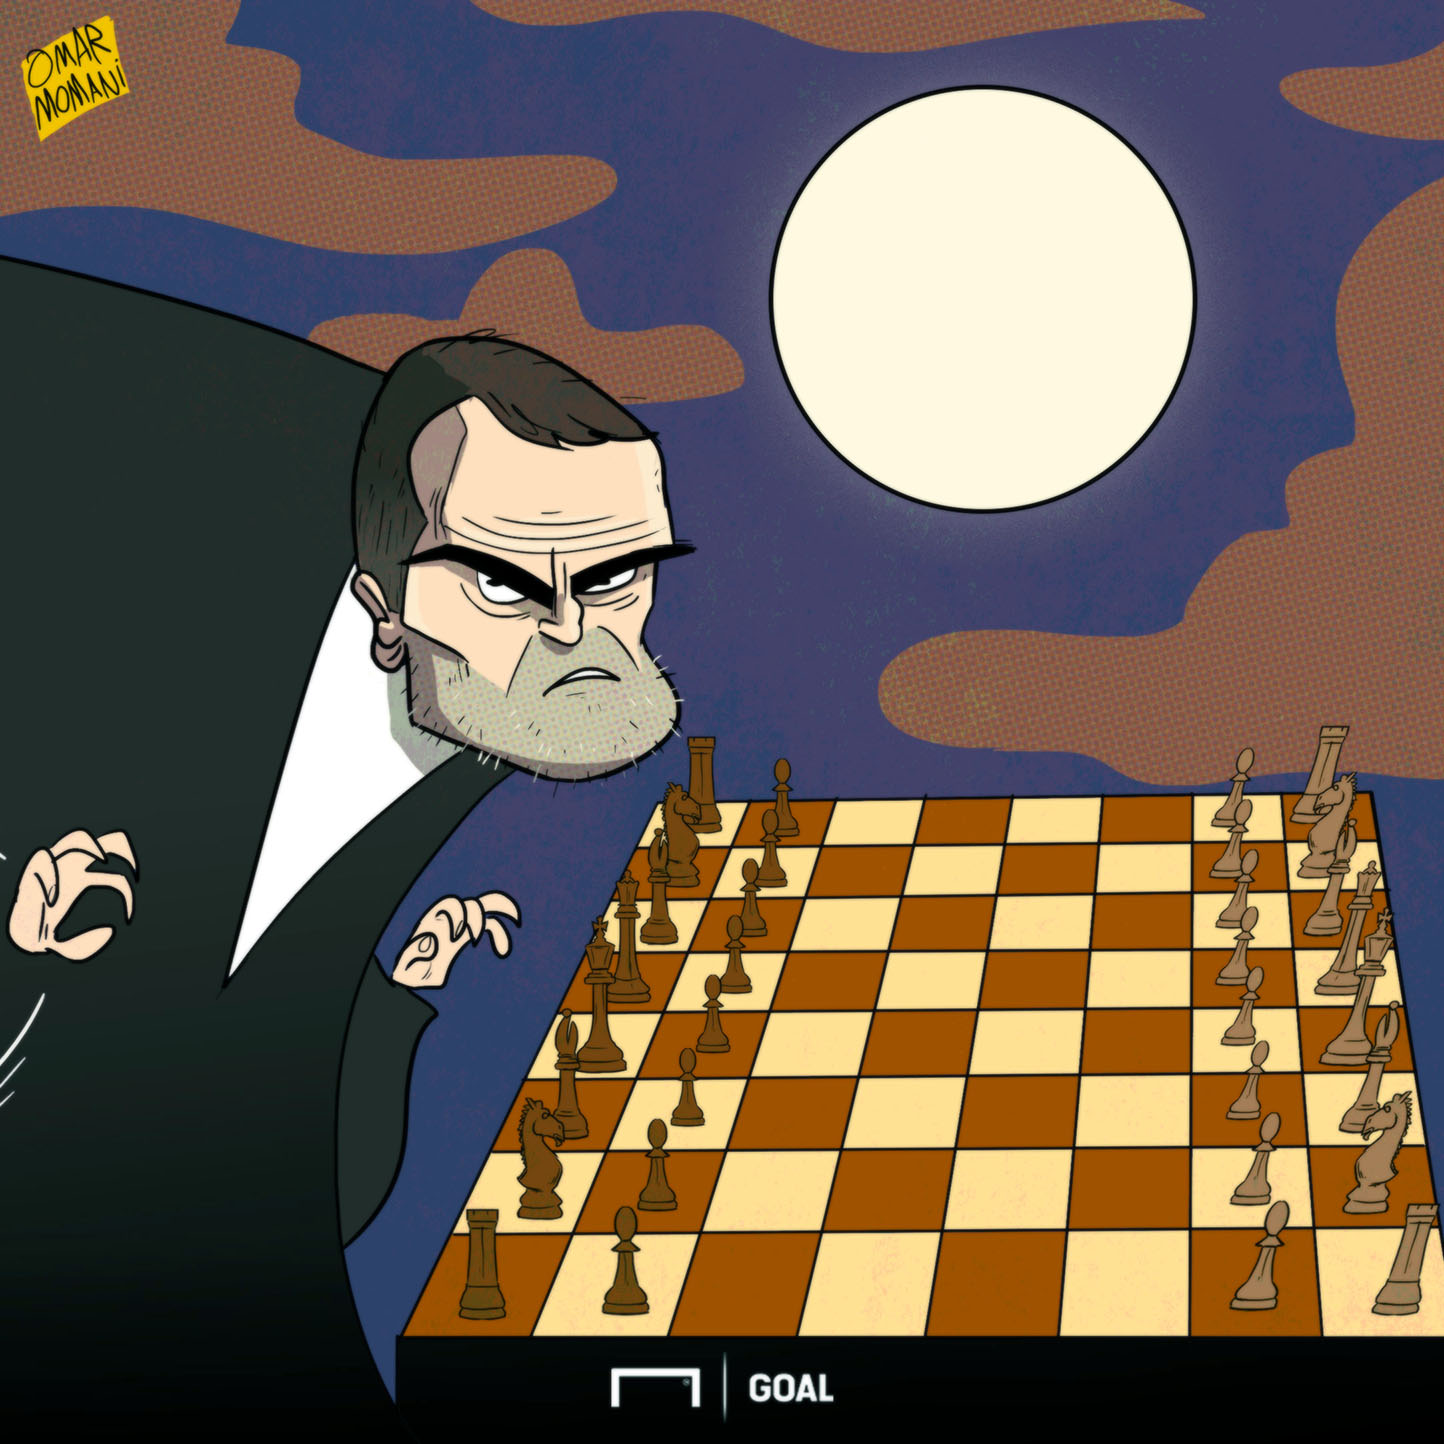 CARTOON Roy Keane Chess